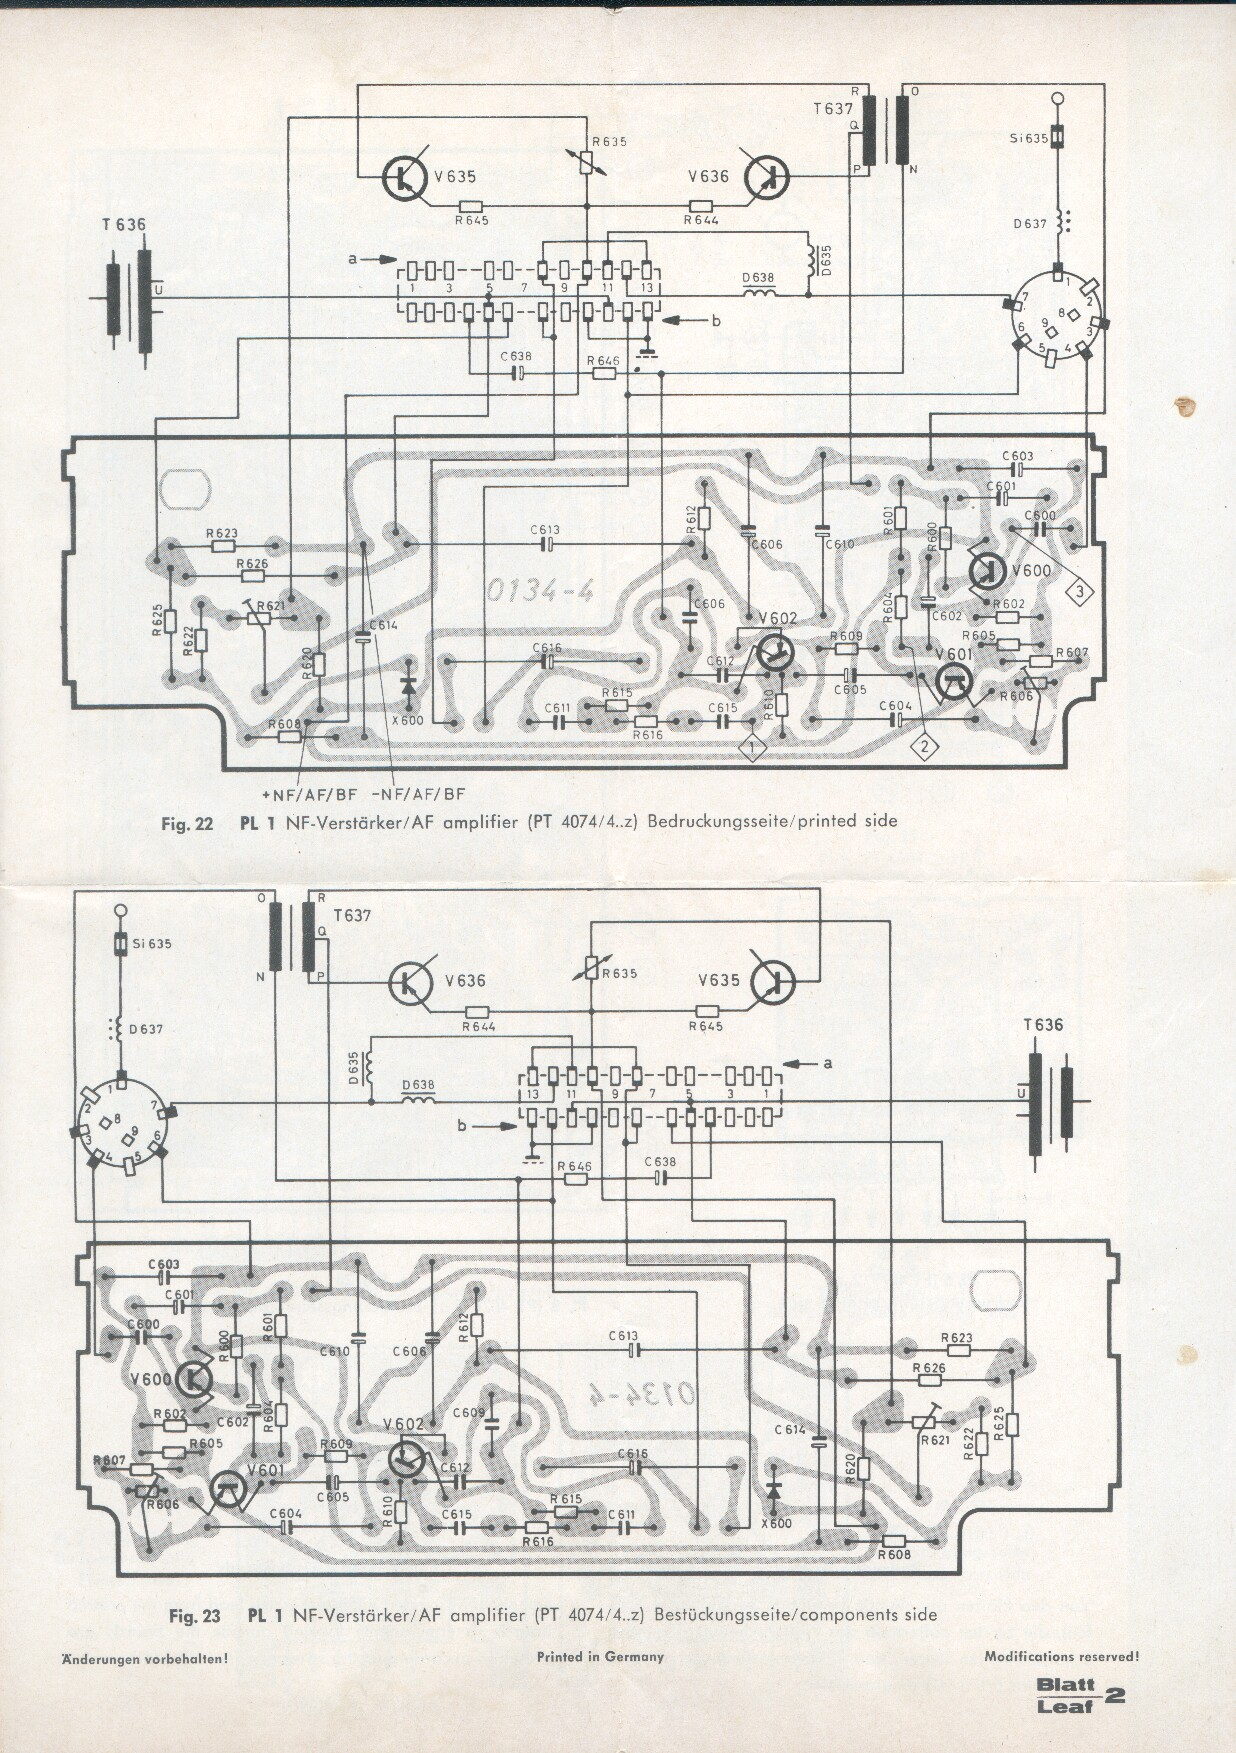 1965 Blaupunkt Koln Schematics Printed Circuit Board And Alignment